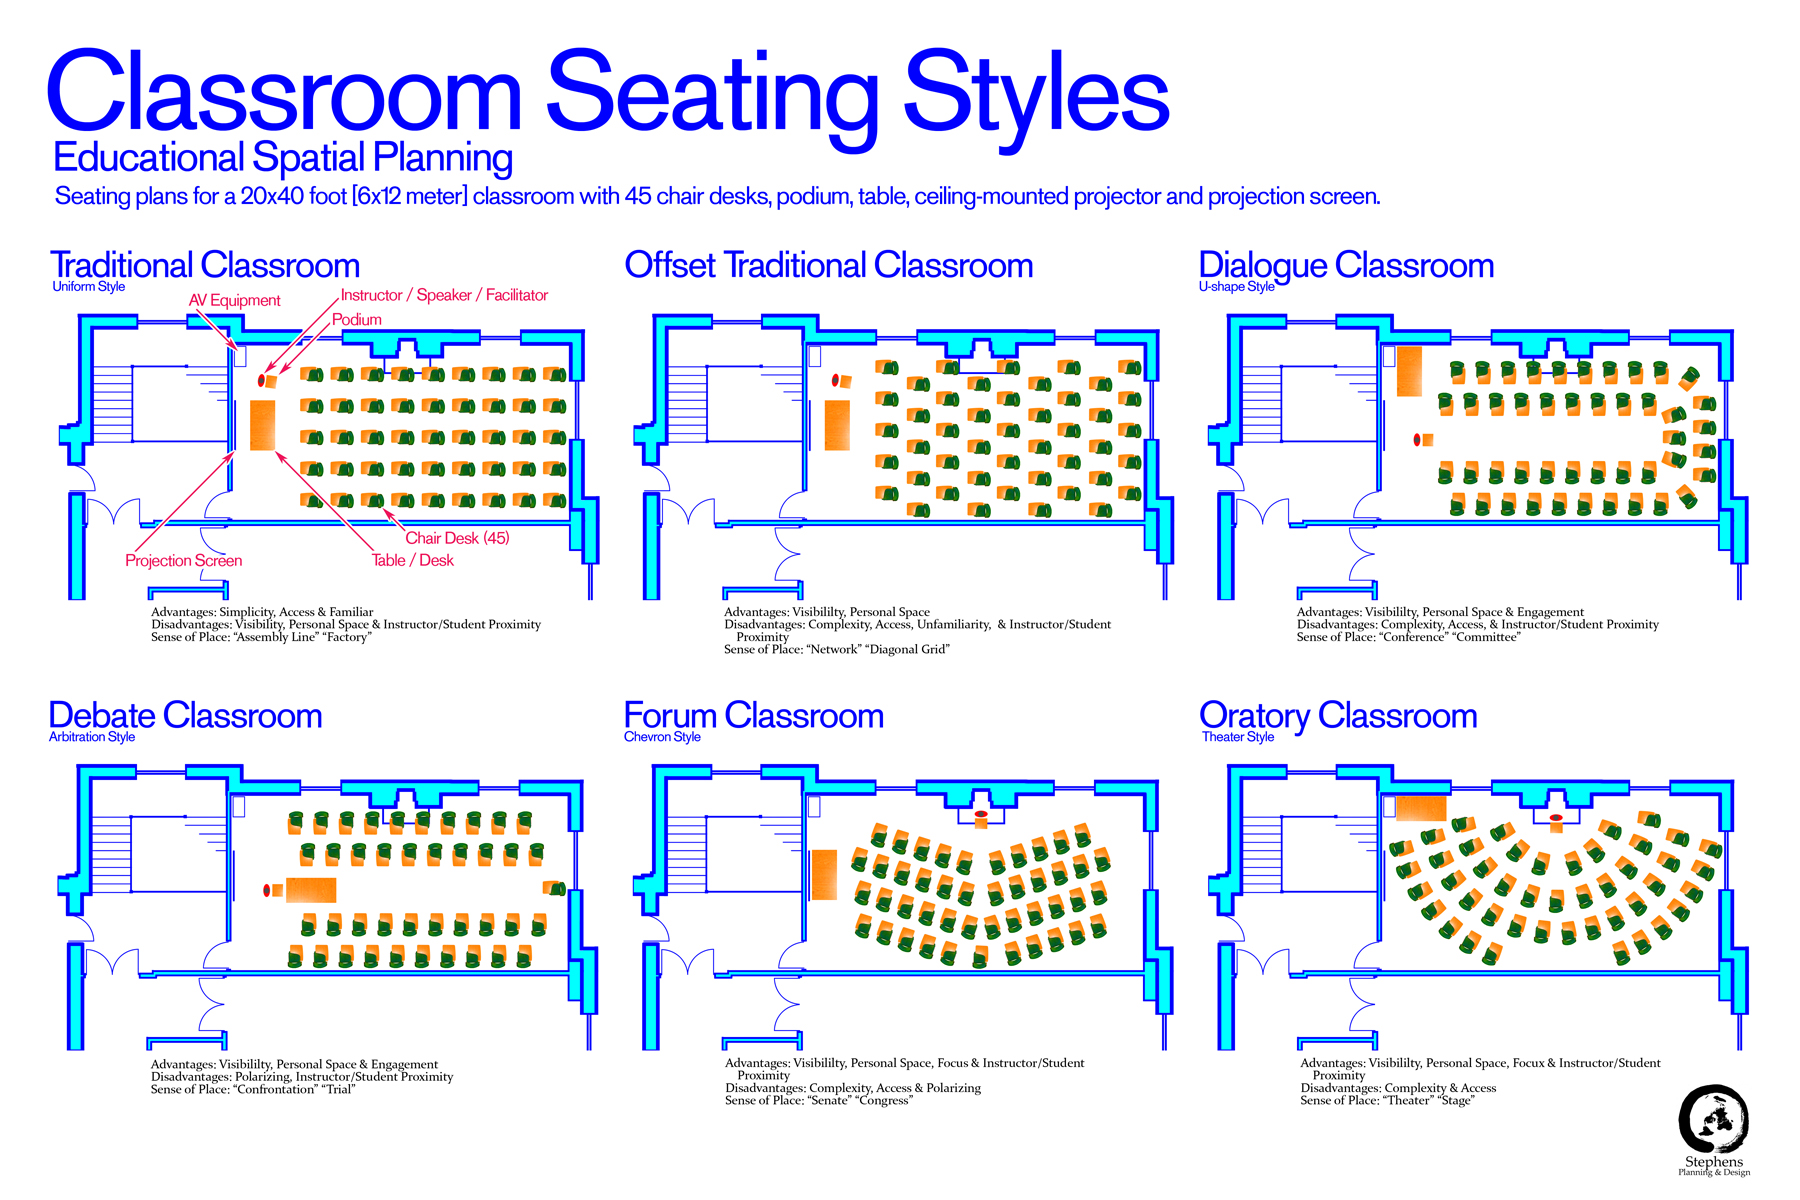 Classroom Layout App ~ Classroom seating styles plans for a typical